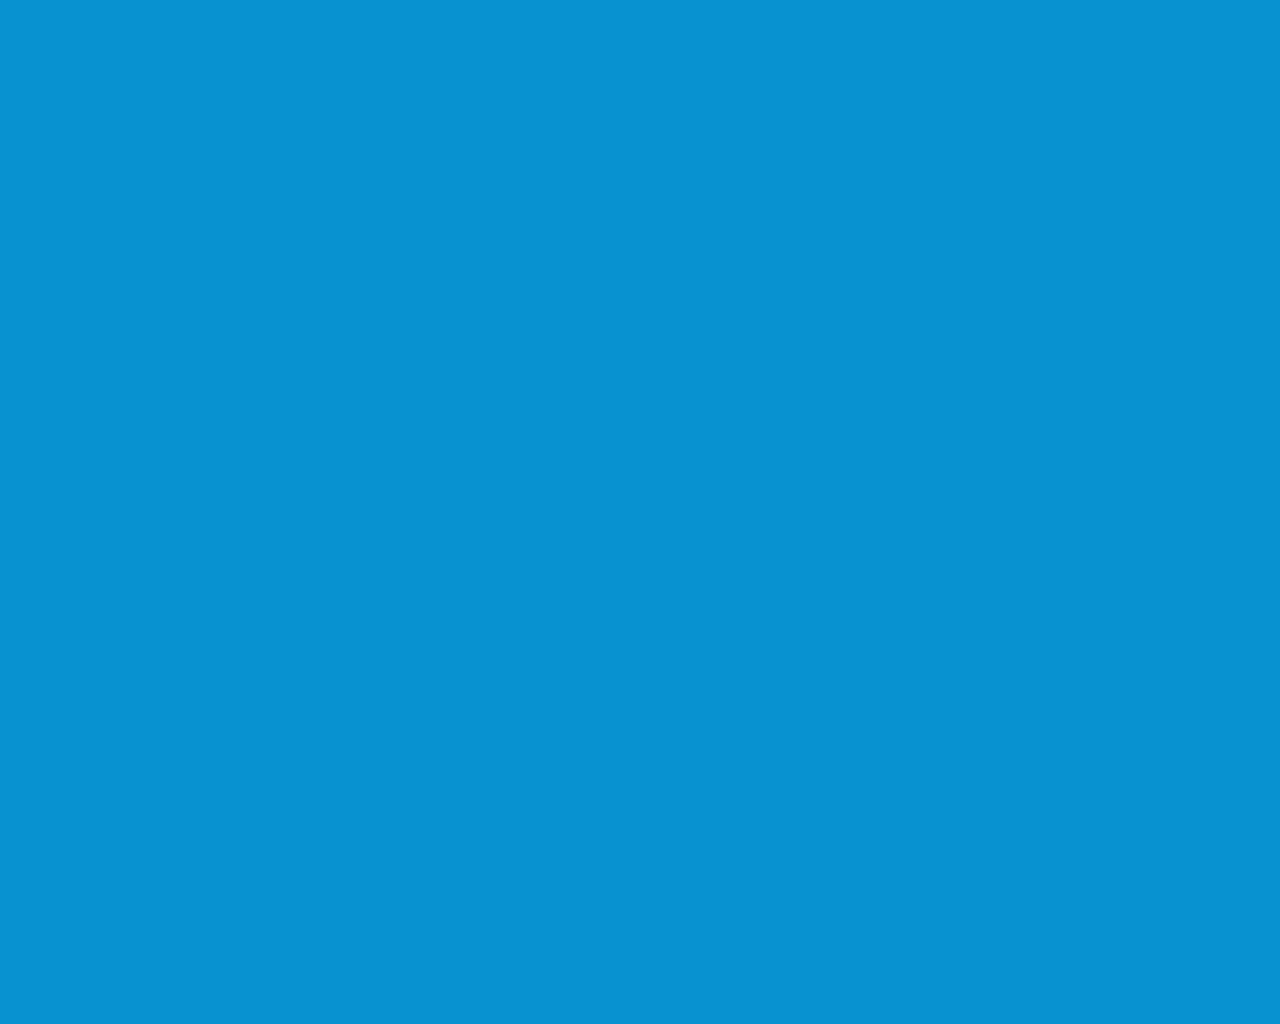 1280x1024 Rich Electric Blue Solid Color Background